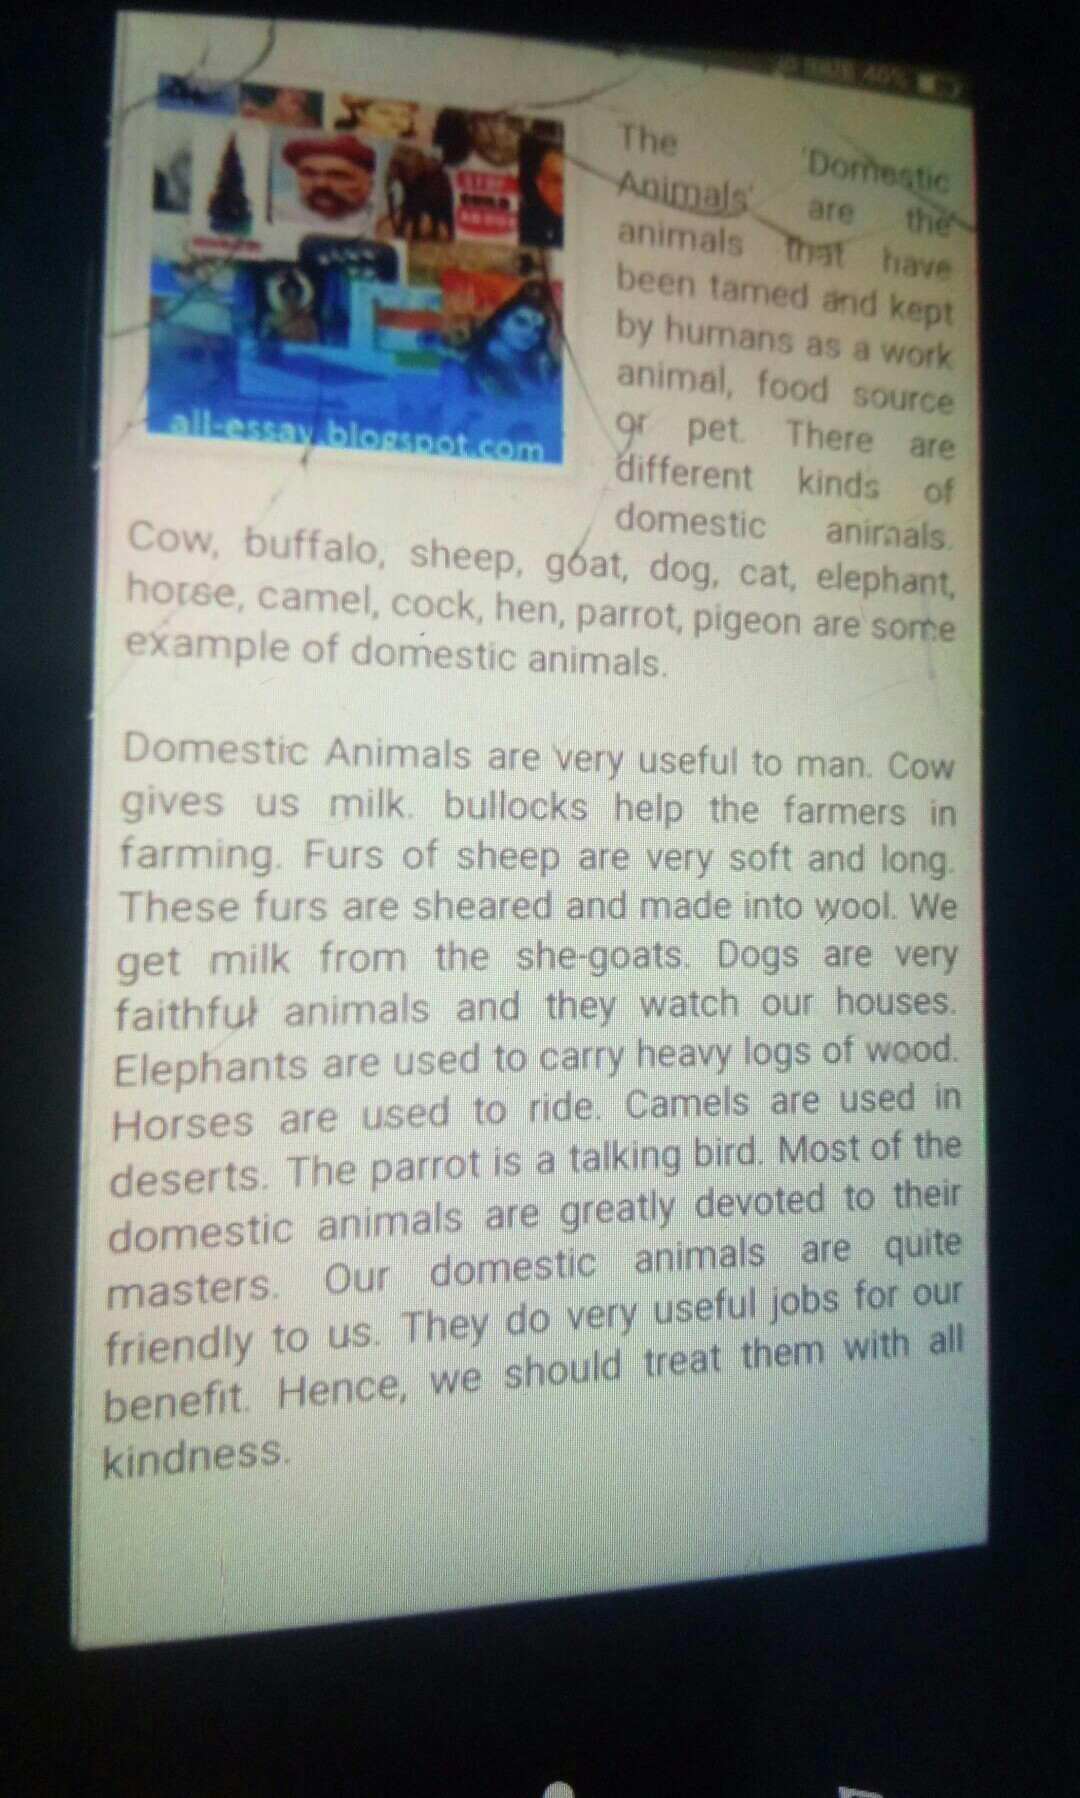 Speech on domestic animals used in agriculture work - Brainly in